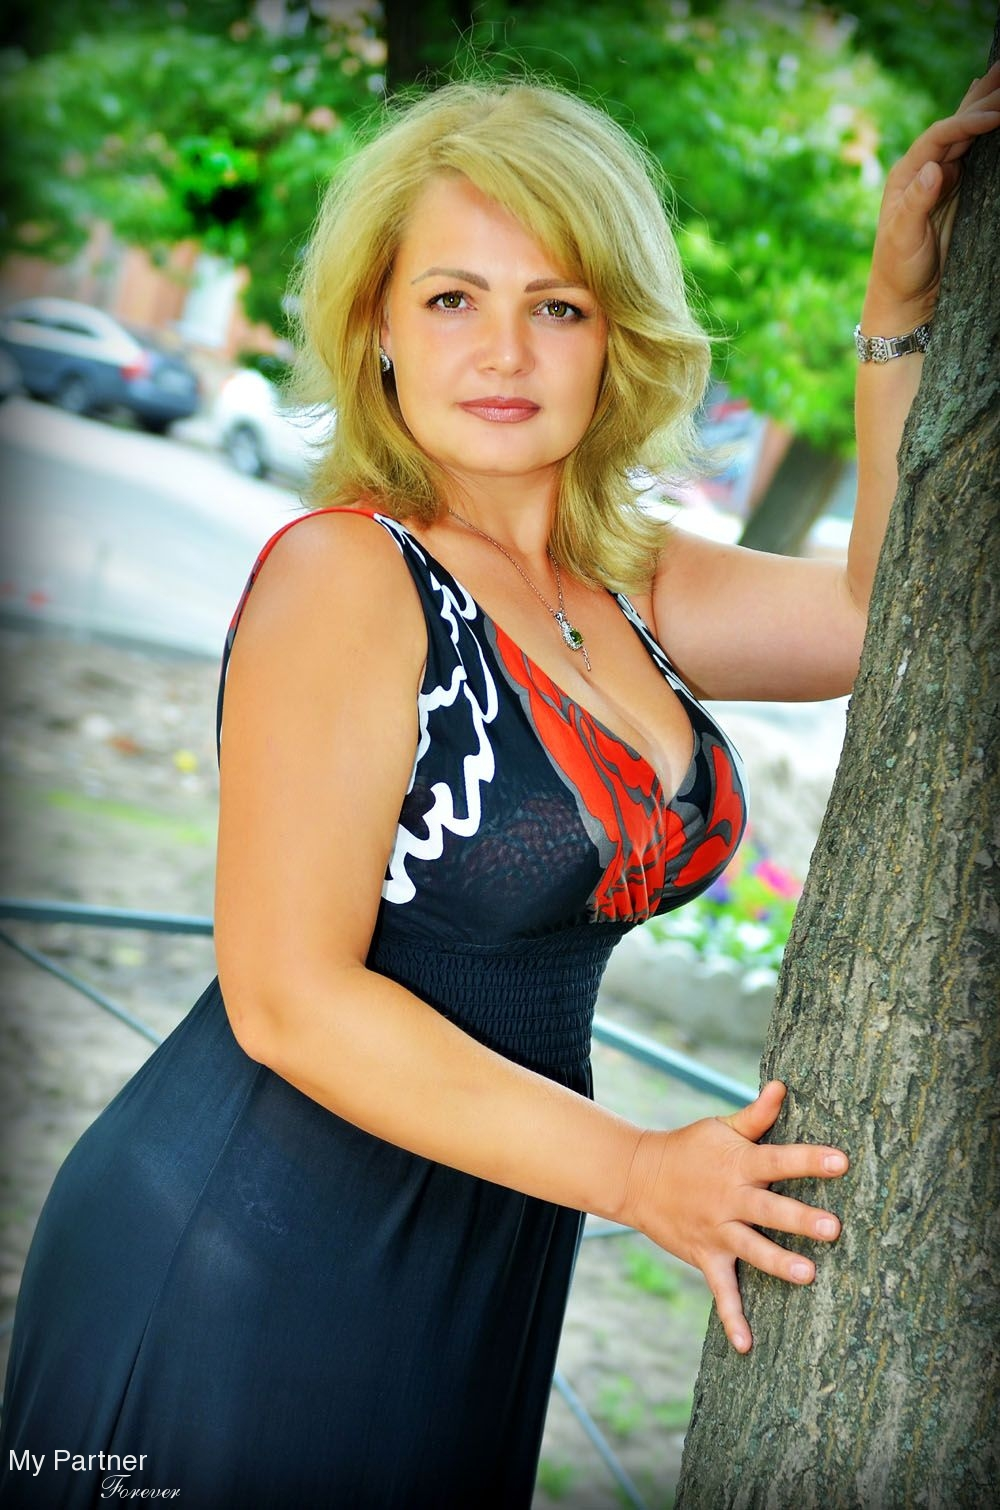 ukrainian dating sites in usa Looking for single russian women for marriage, love, and romance our free dating site is a great way to find an amazing women from russia, ukraine and other countries of.